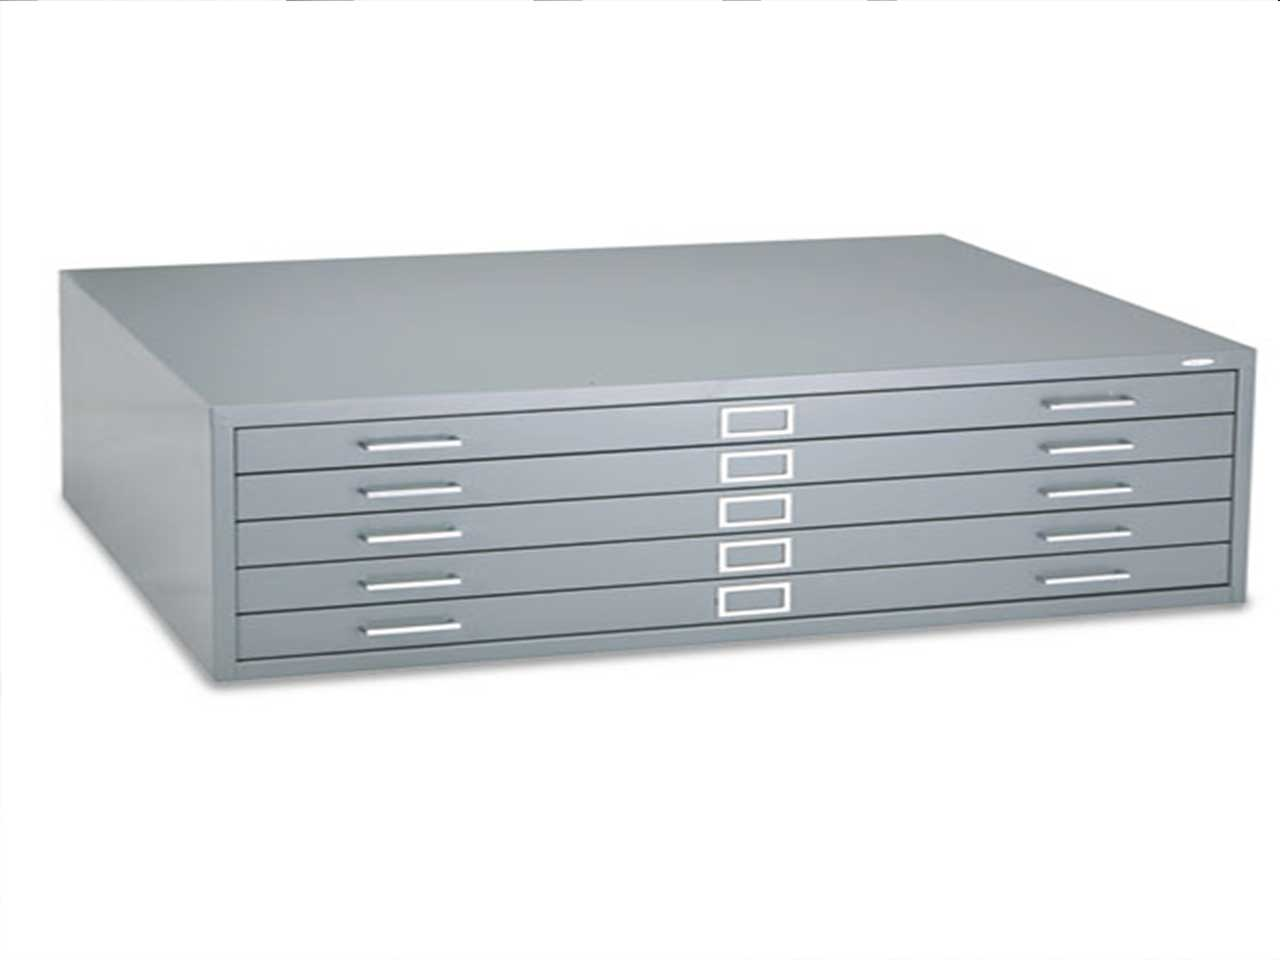 File Cabinets For Sale in Houston, TX & Katy, TX New & Used